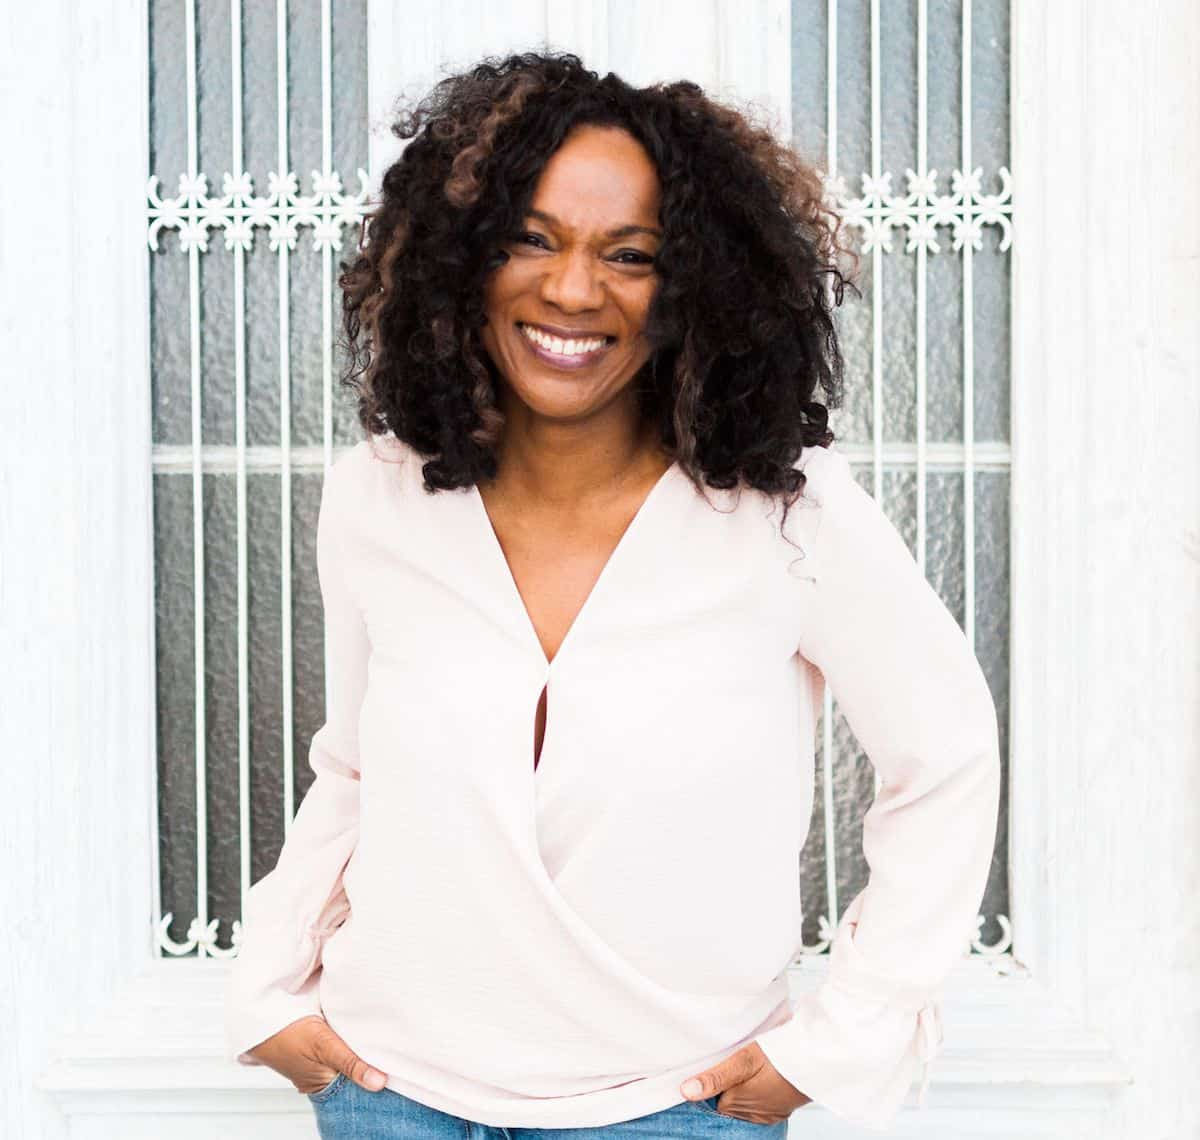 Dr Bunmi Aboaba is a Recovery Coach specialising in Food Addiction